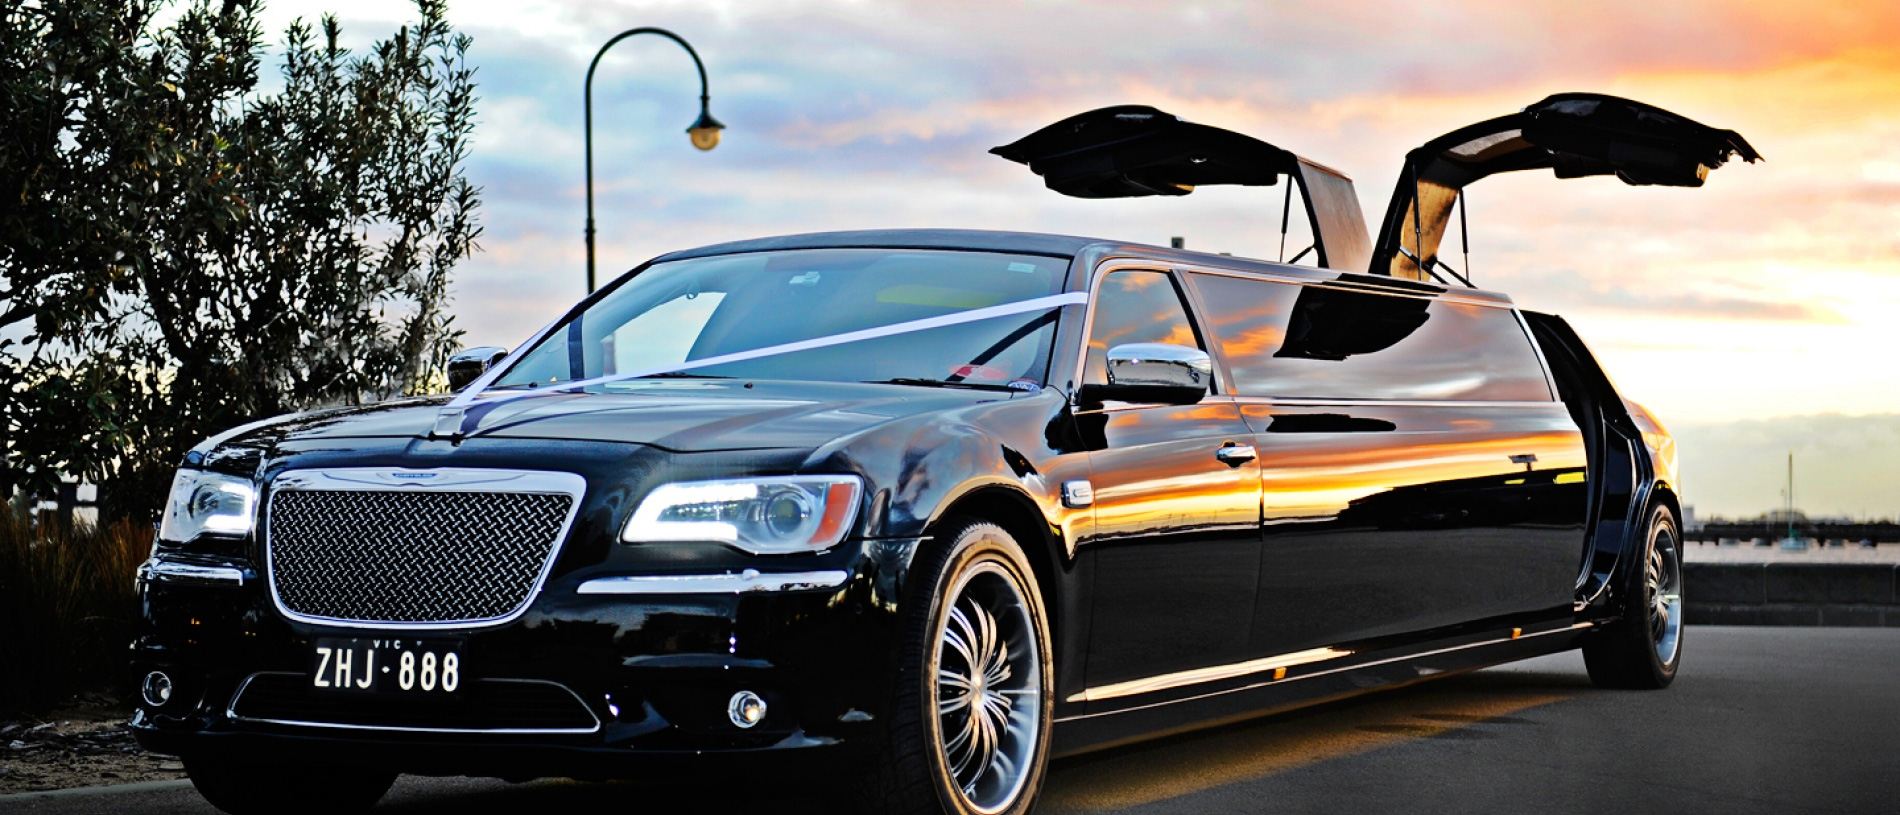 Limo Wedding Car Hire Melbourne